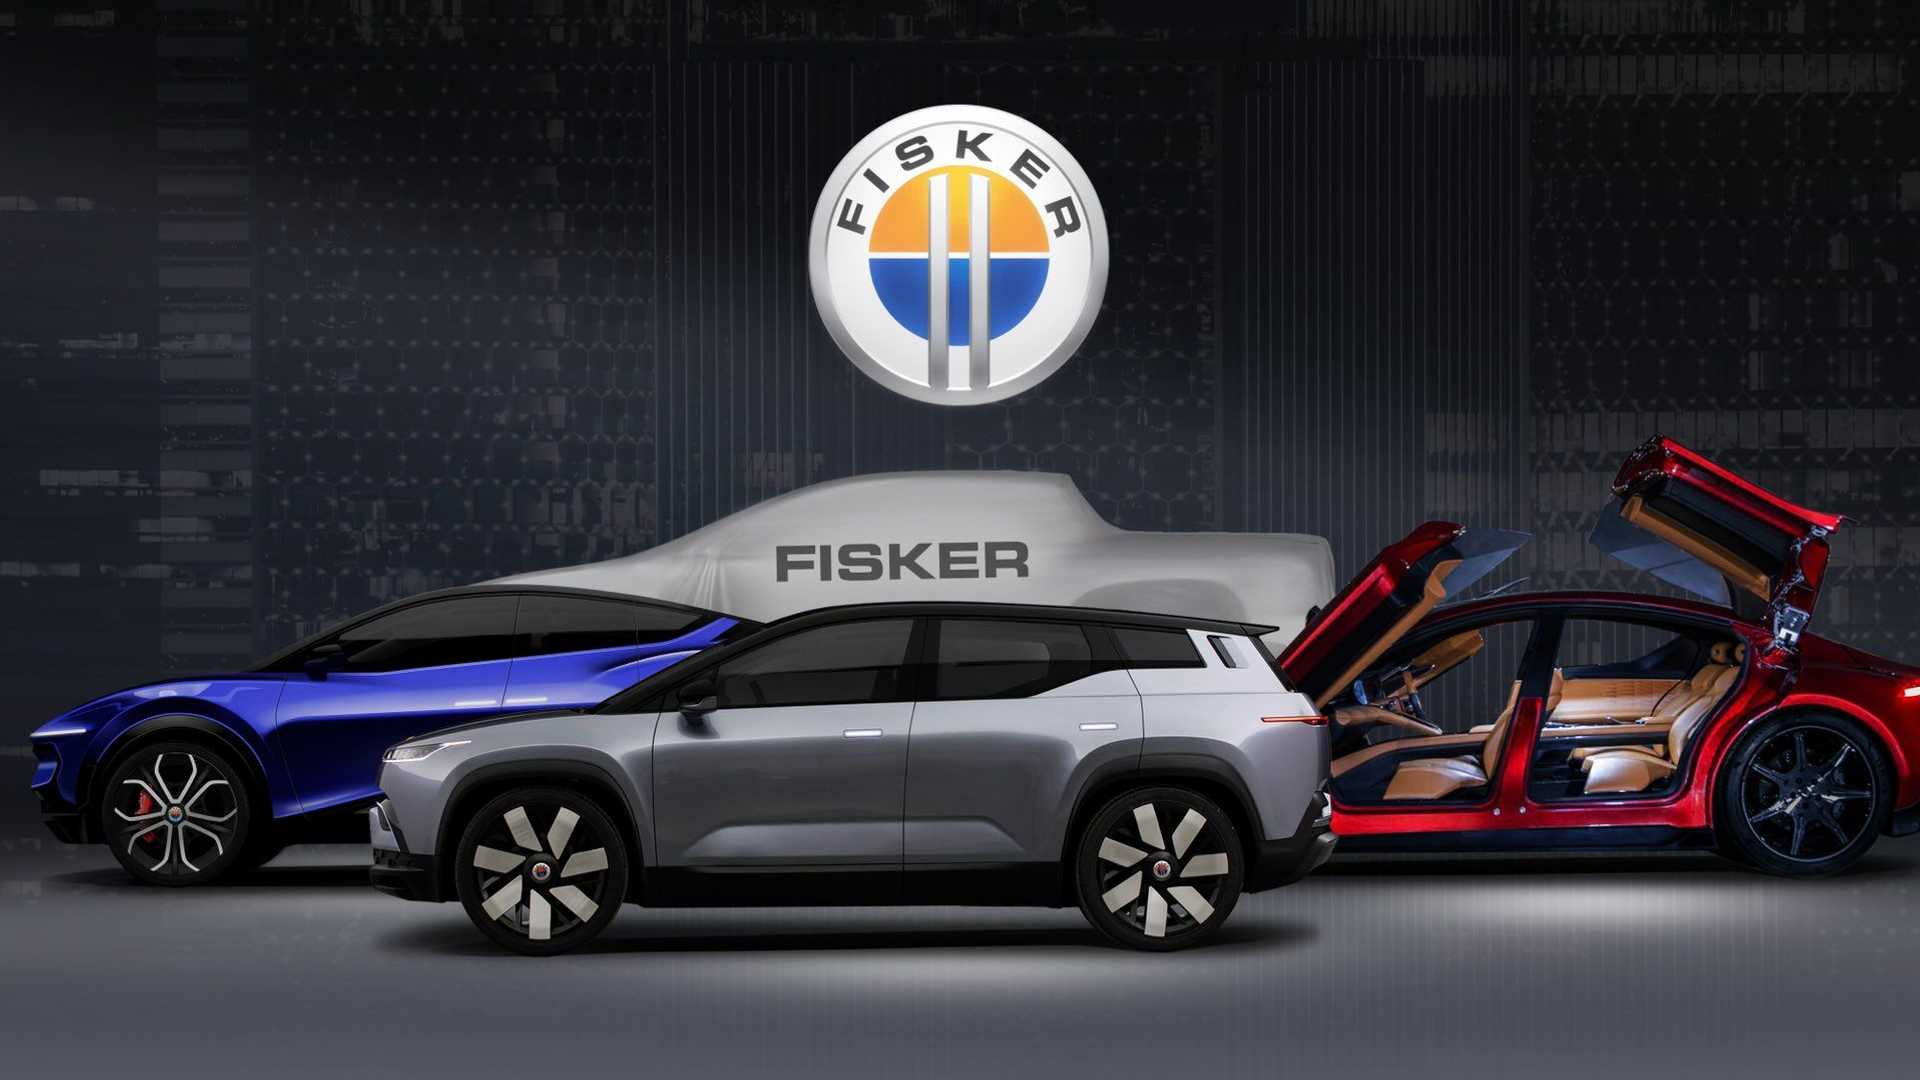 Fisker Inc. has revealed its new arrivals roadmap for the next five years. Aside from the Ocean e-SUV scheduled to hit the market in the fourth quarter of 2022, the company intends to launch another crossover, as well as a sedan and a pickup truck in 2023–25. You can see Ocean's Three standing next to it on the announcement pic.